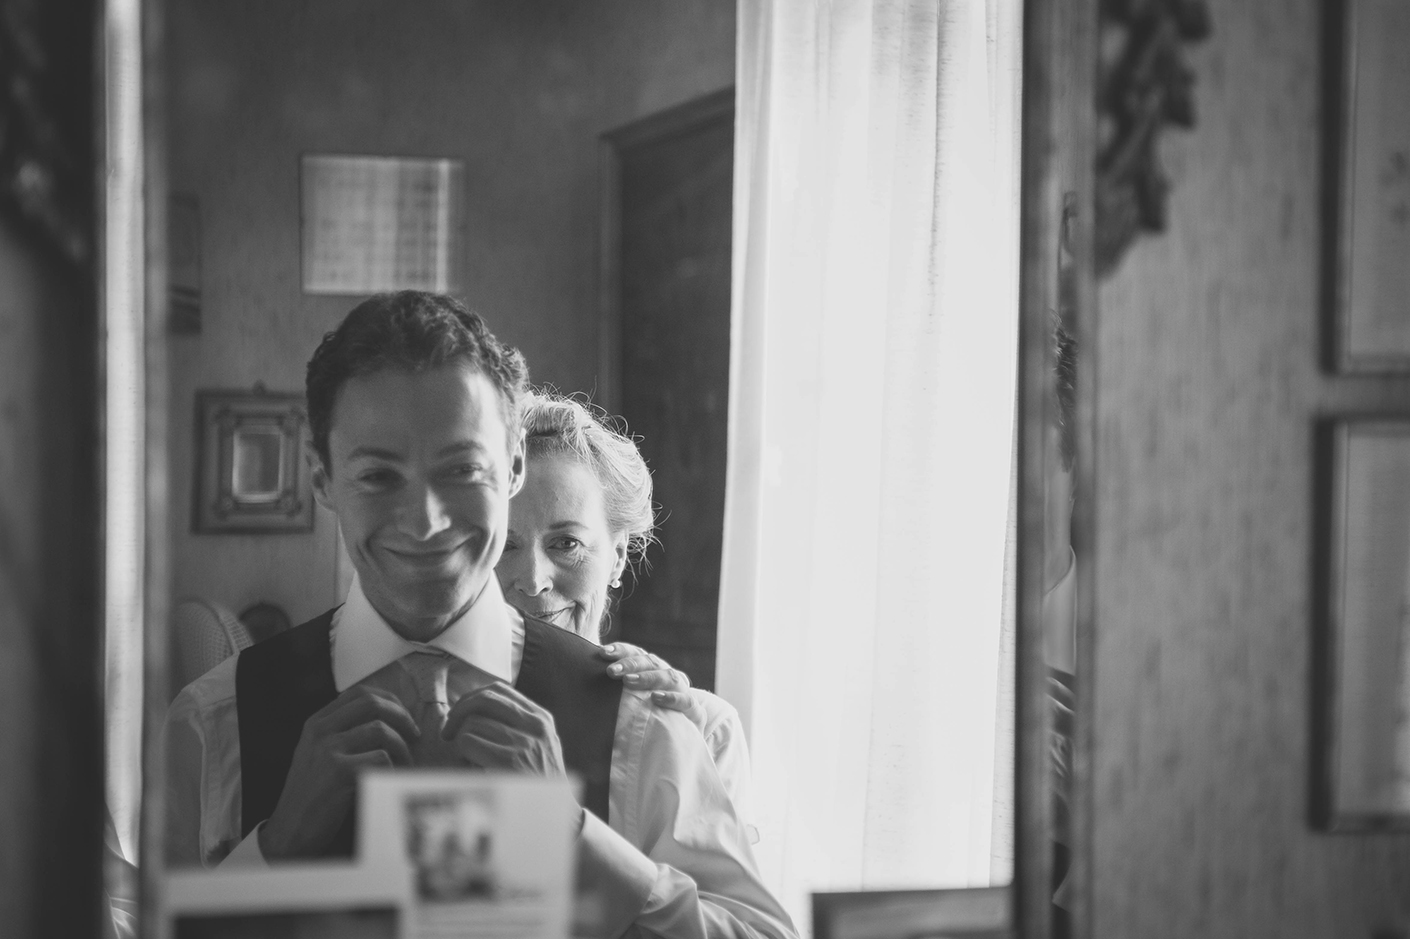 Wedding Photography - Mother and Groom, in the mirror